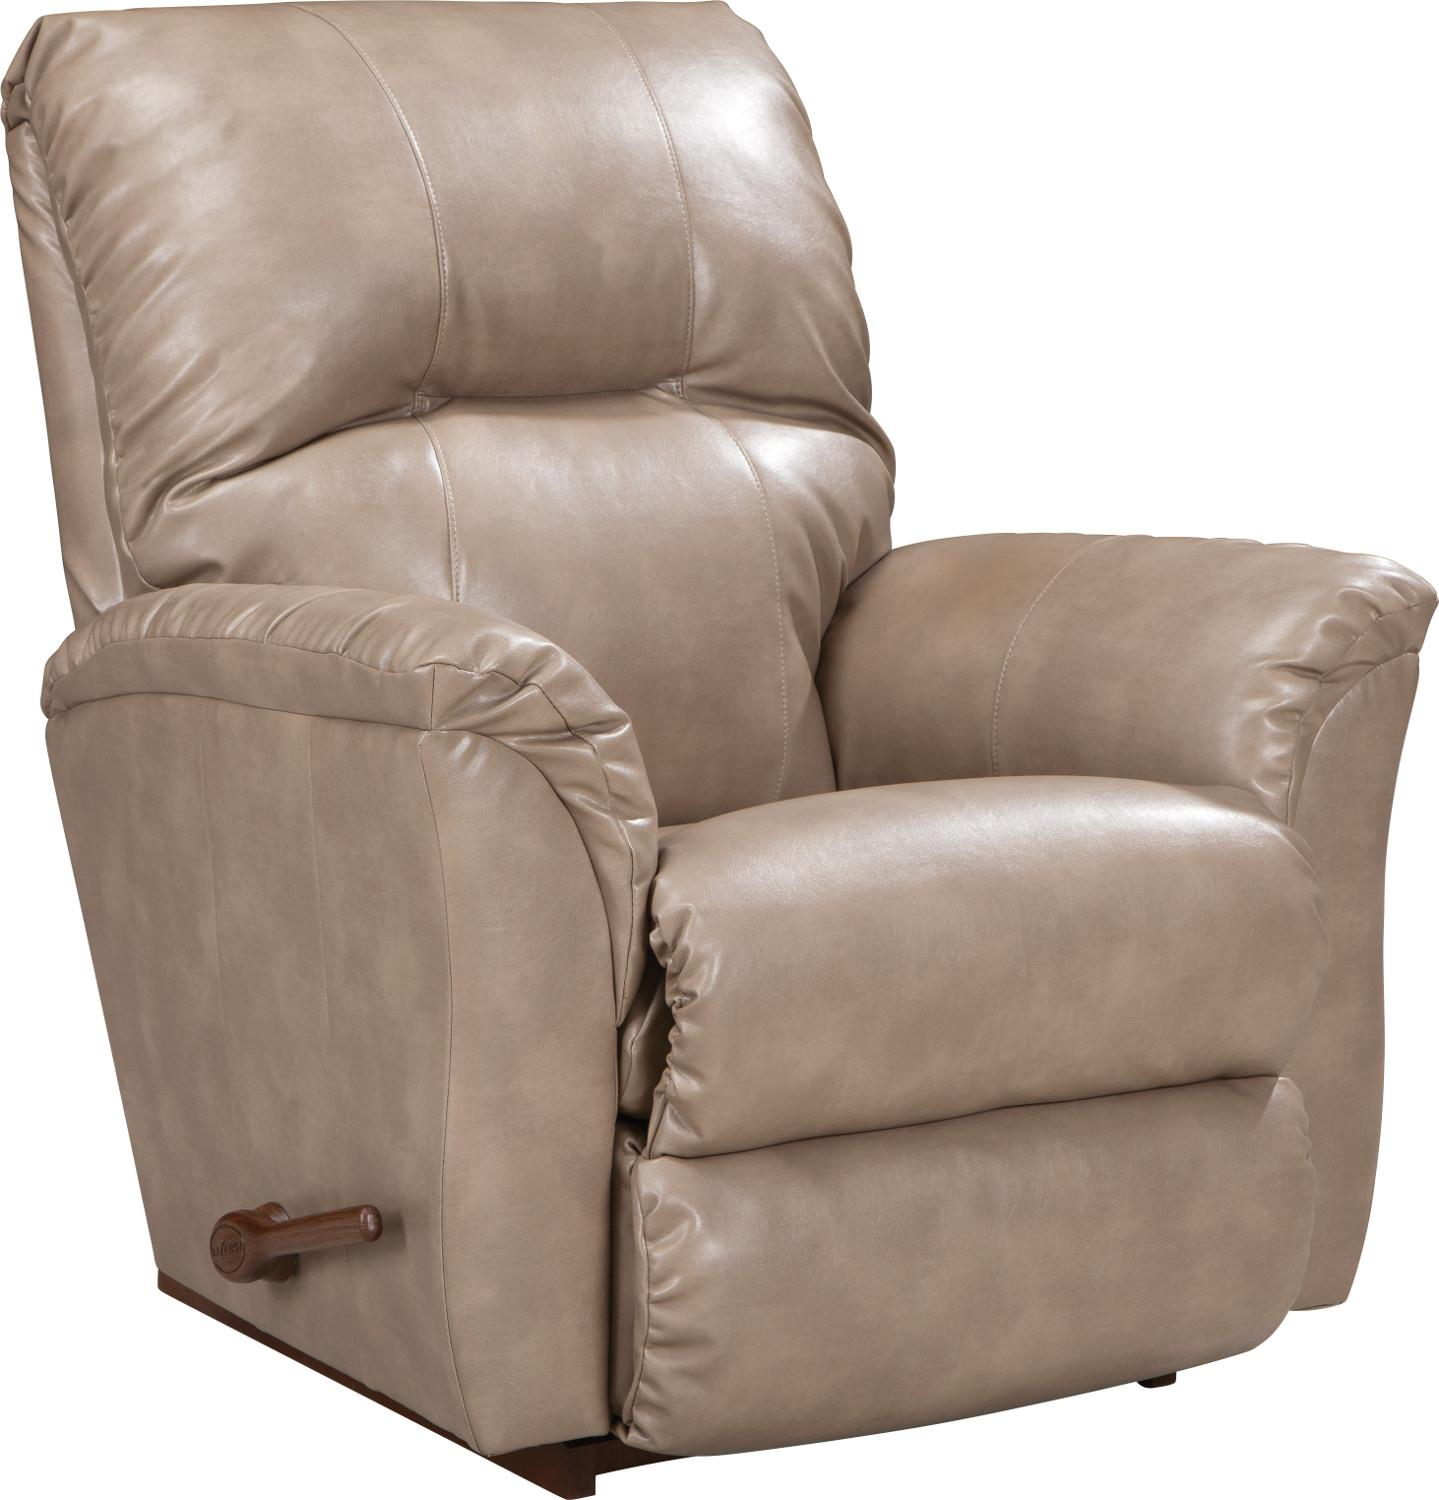 Gabe RECLINA ROCKER Recliner by La Z Boy